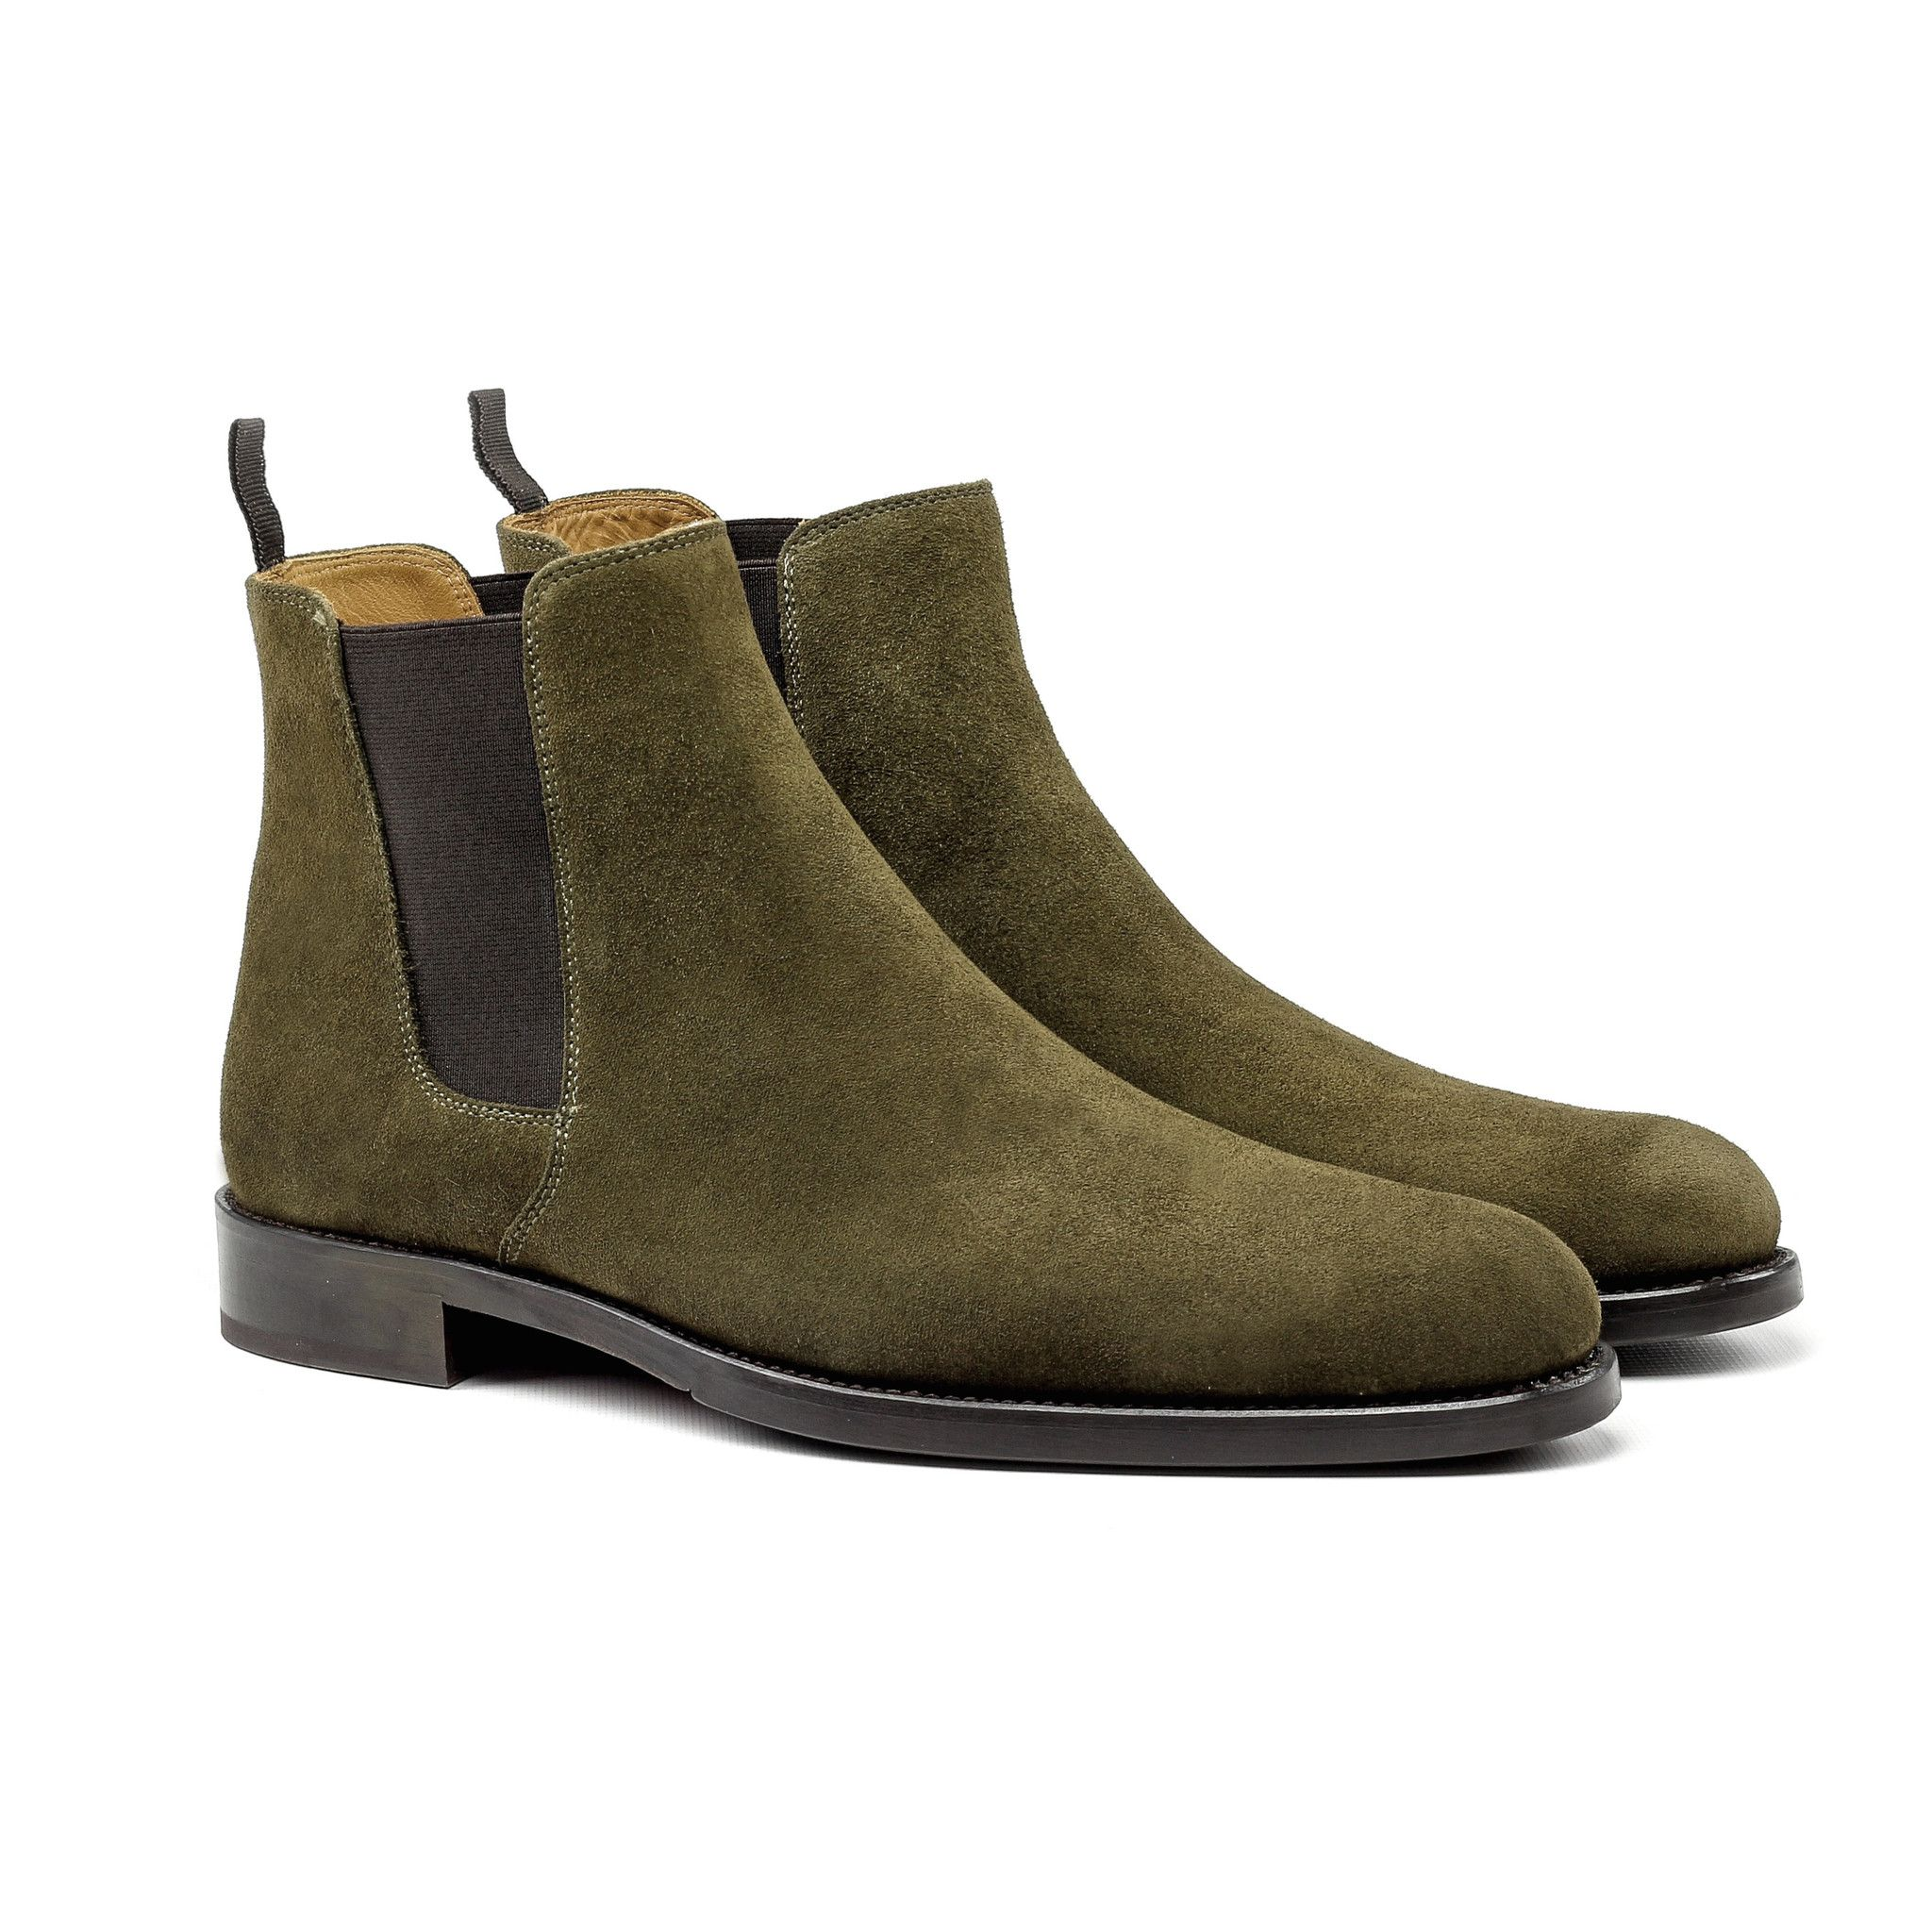 Timberland Newmarket Chukka Boots Brown Leather Suede 9166